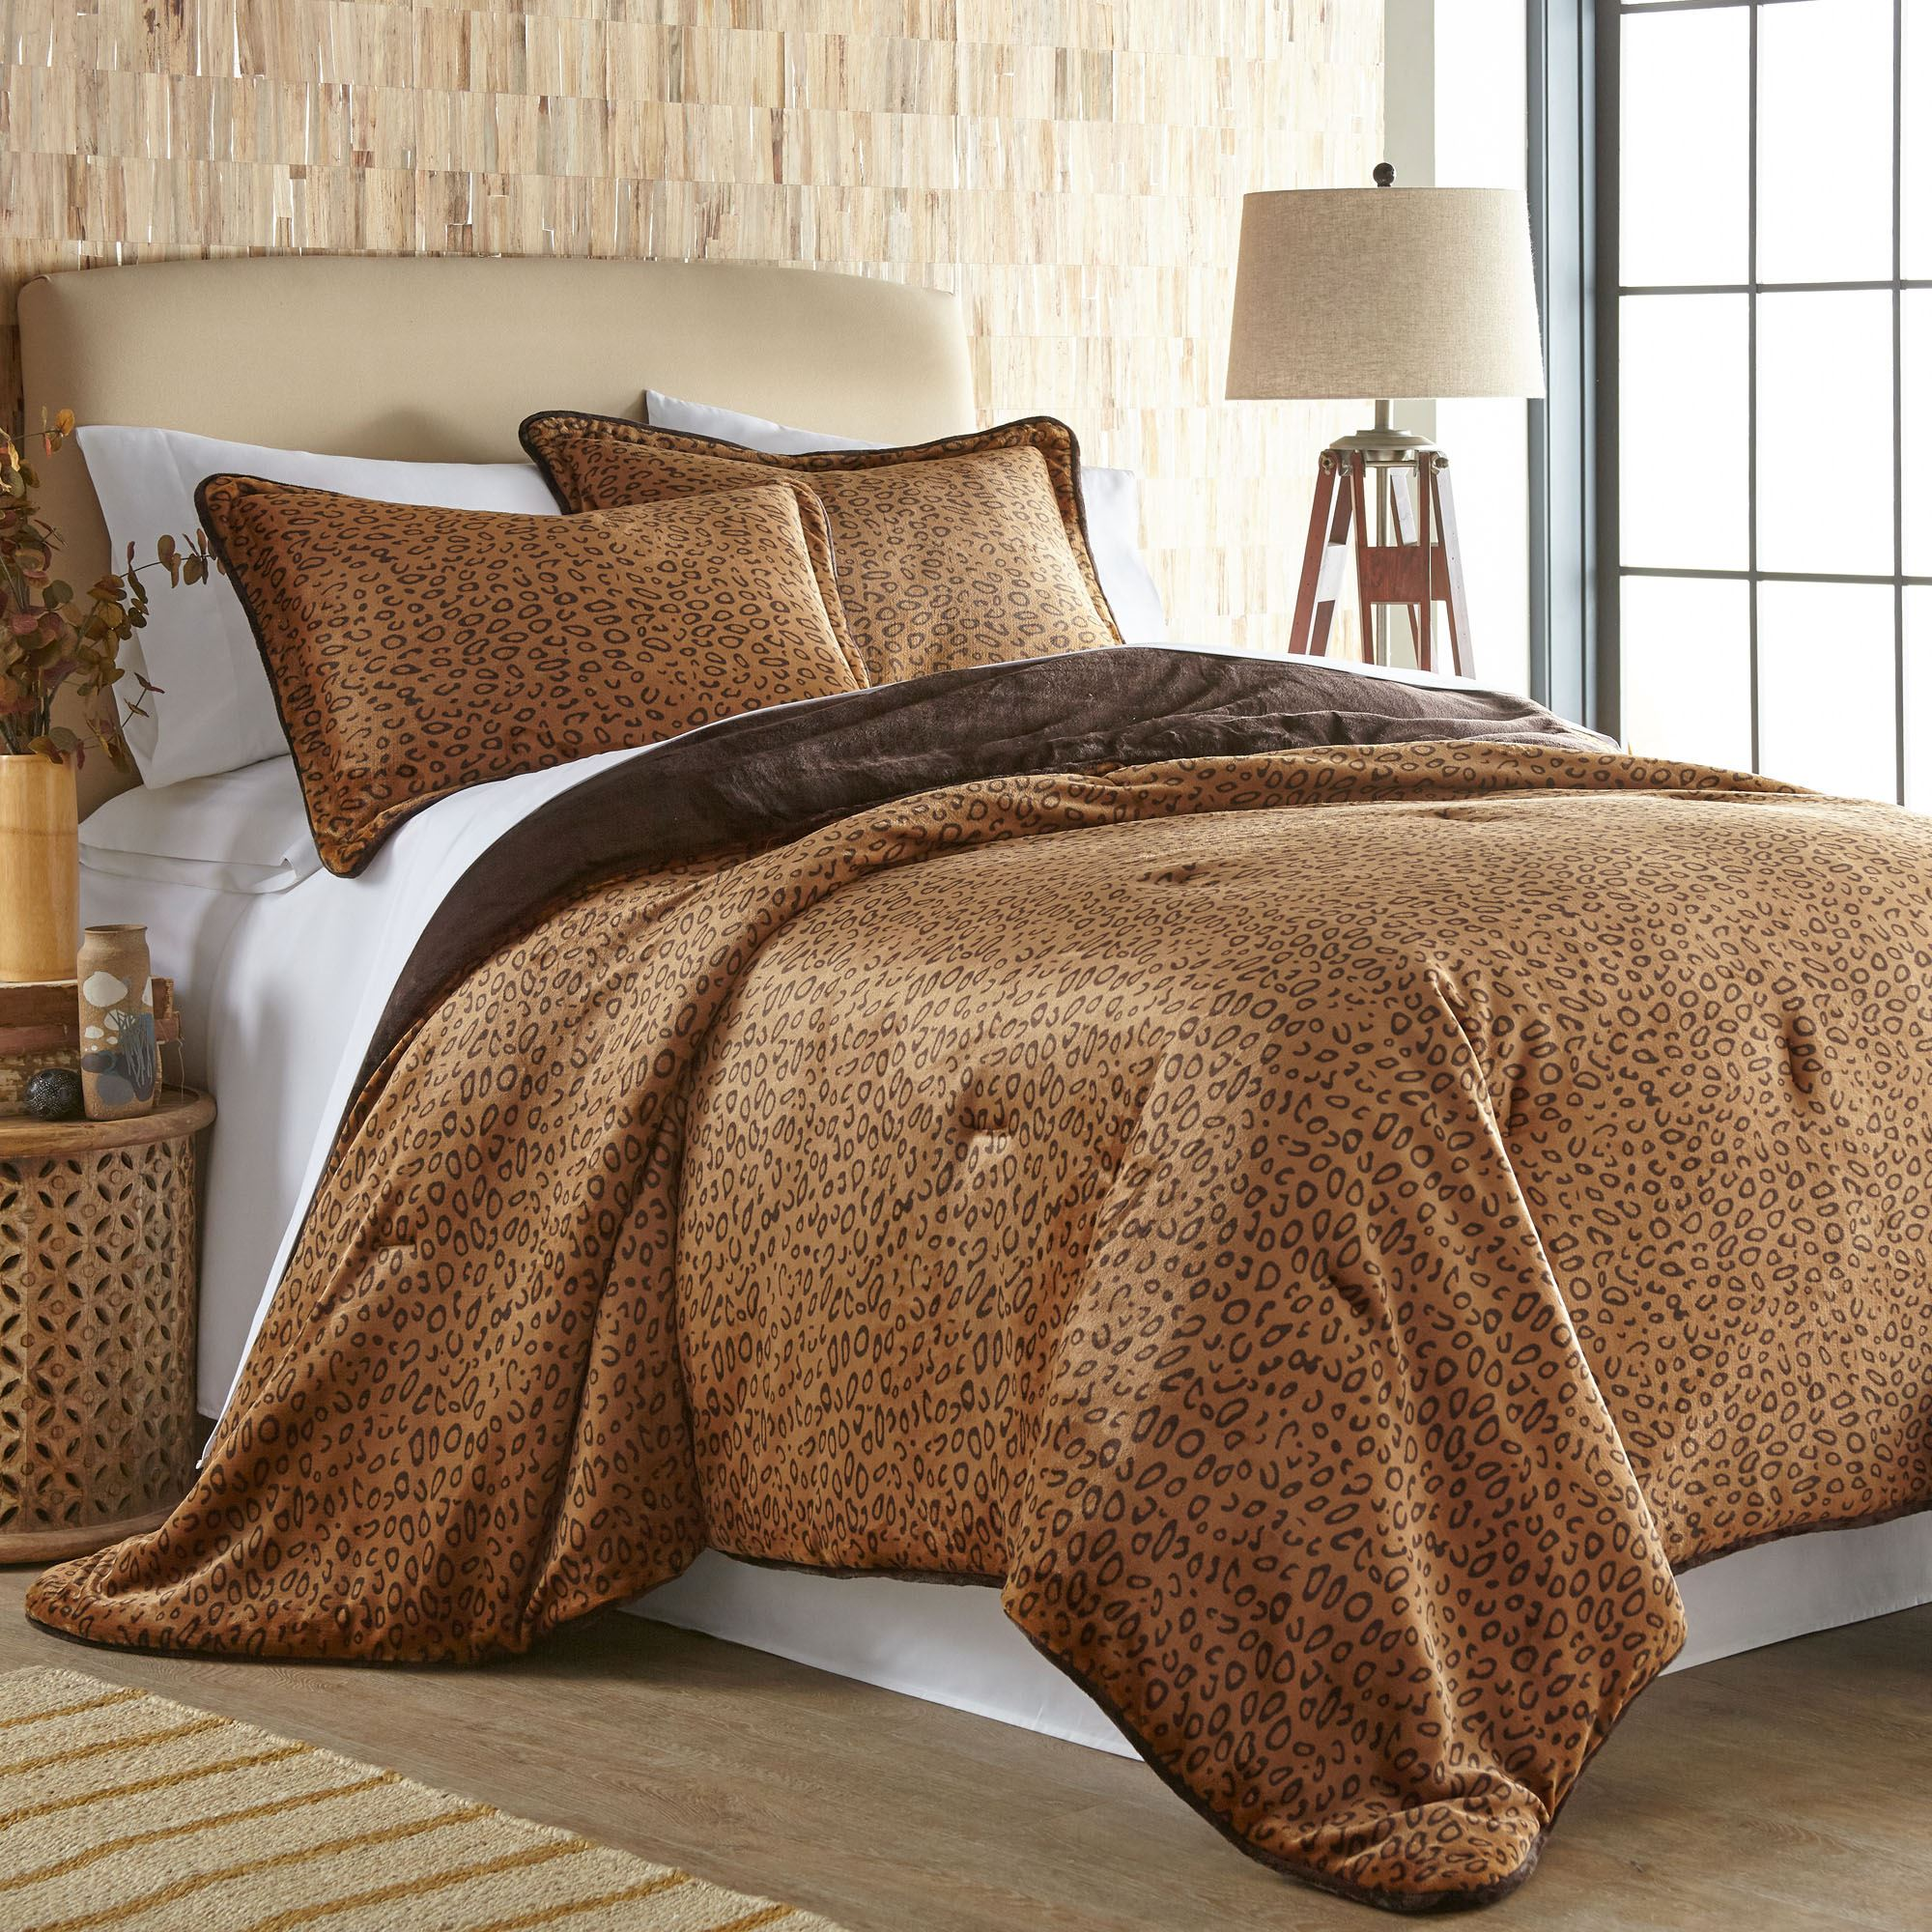 Cheetah Print Ultra Soft Mini Comforter Set